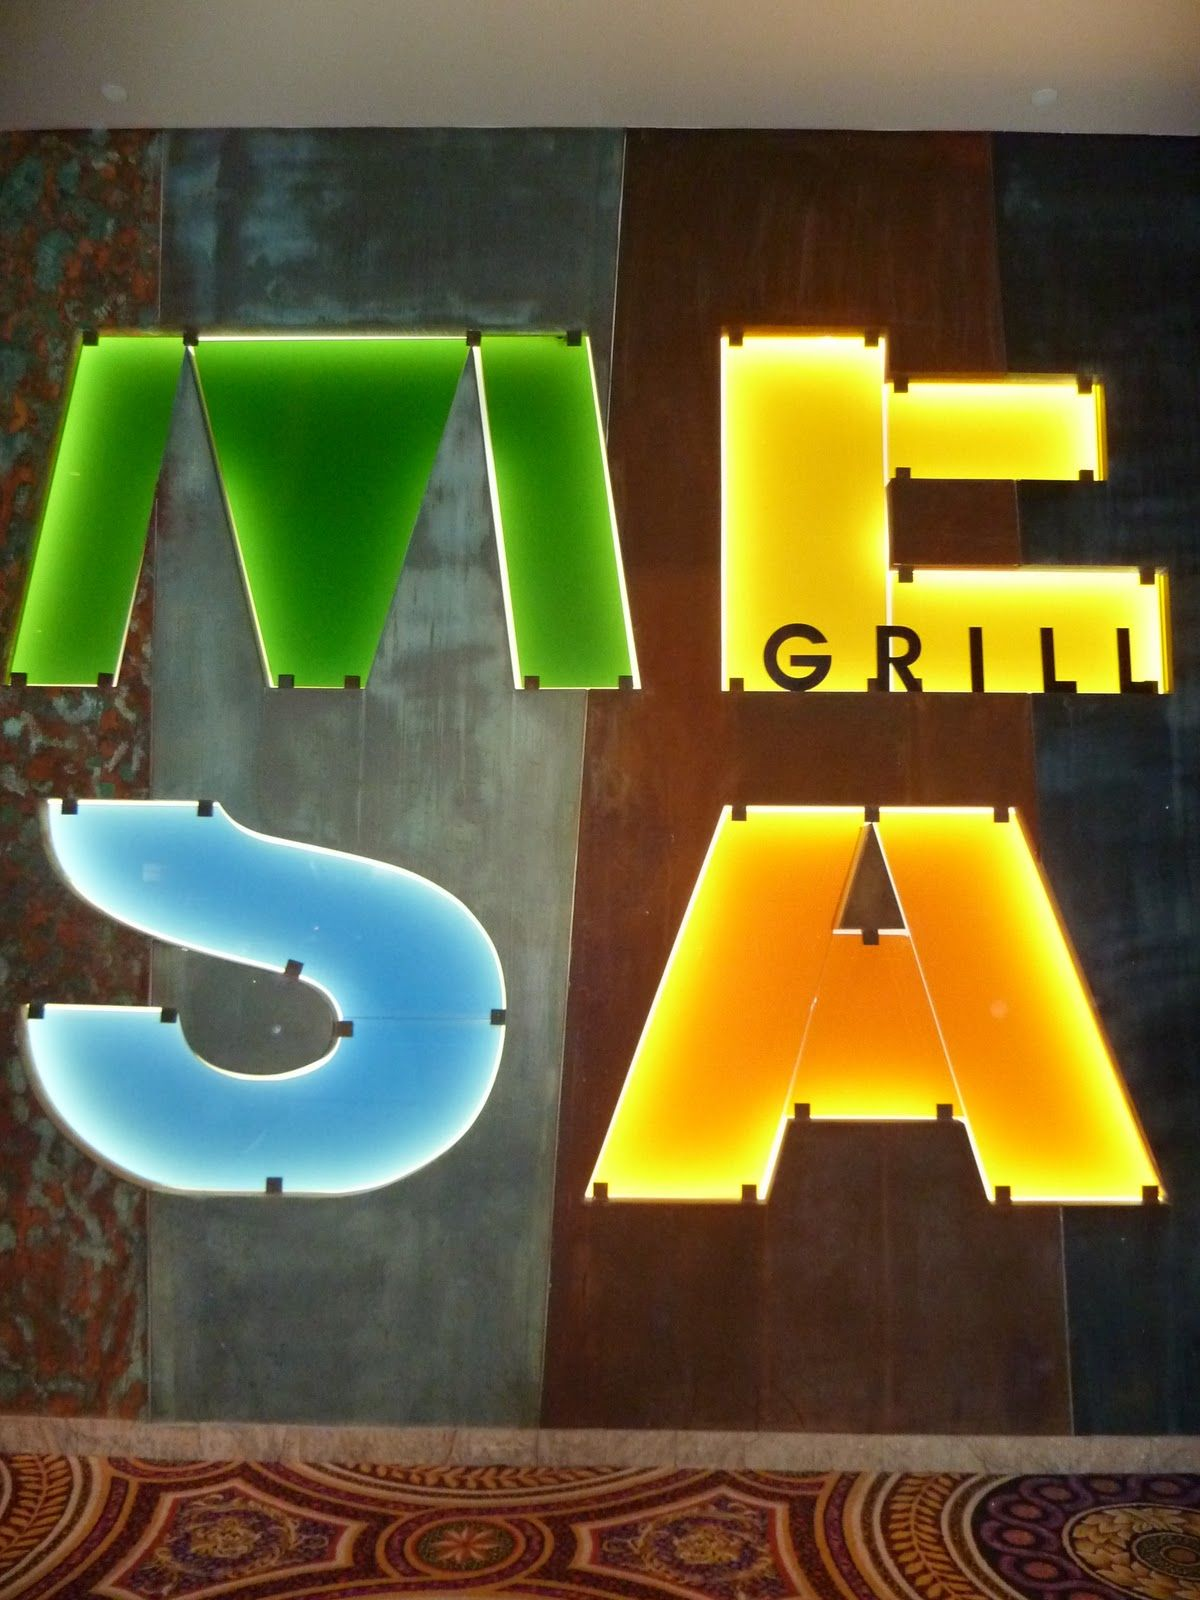 Mesa Grill, Owned by the one and only Bobby Flay